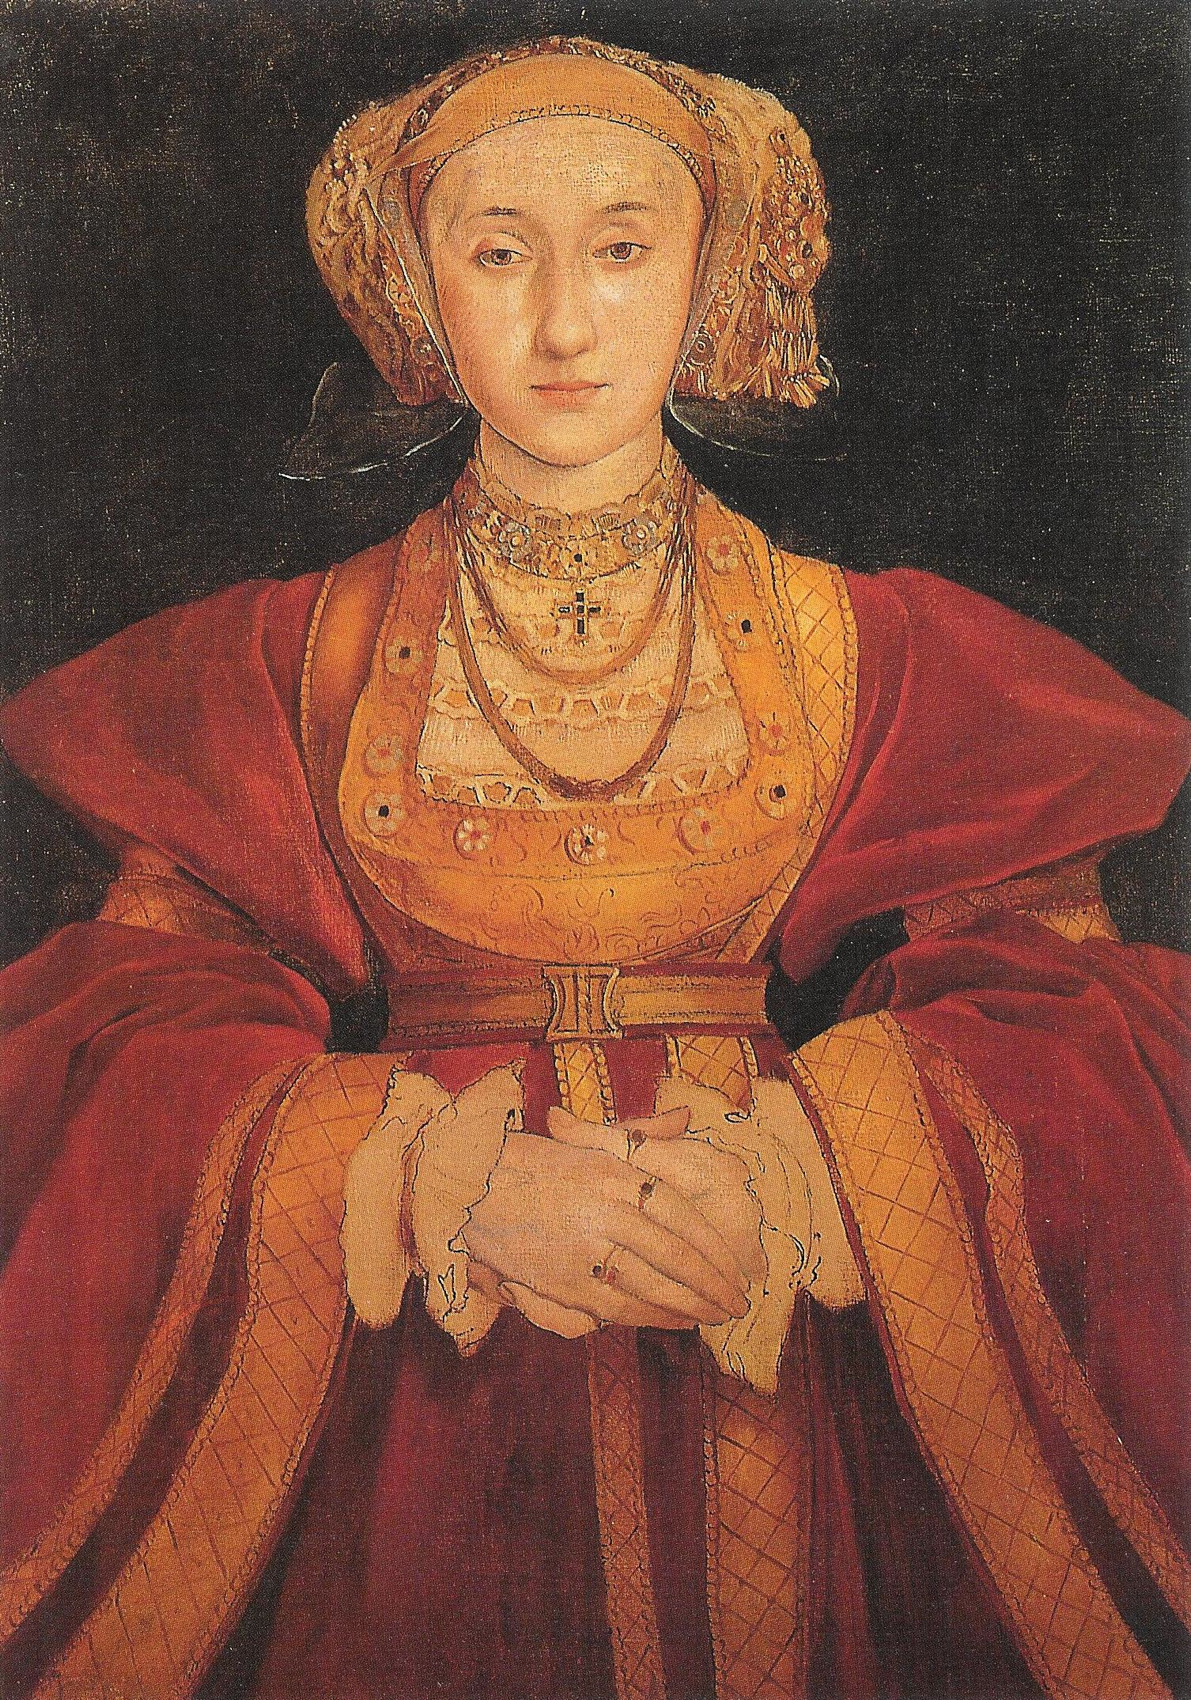 cleves girls In mid 16th century england there were rumors that had spread throughout the kingdom and beyondanne of cleves had a child by henry viii.